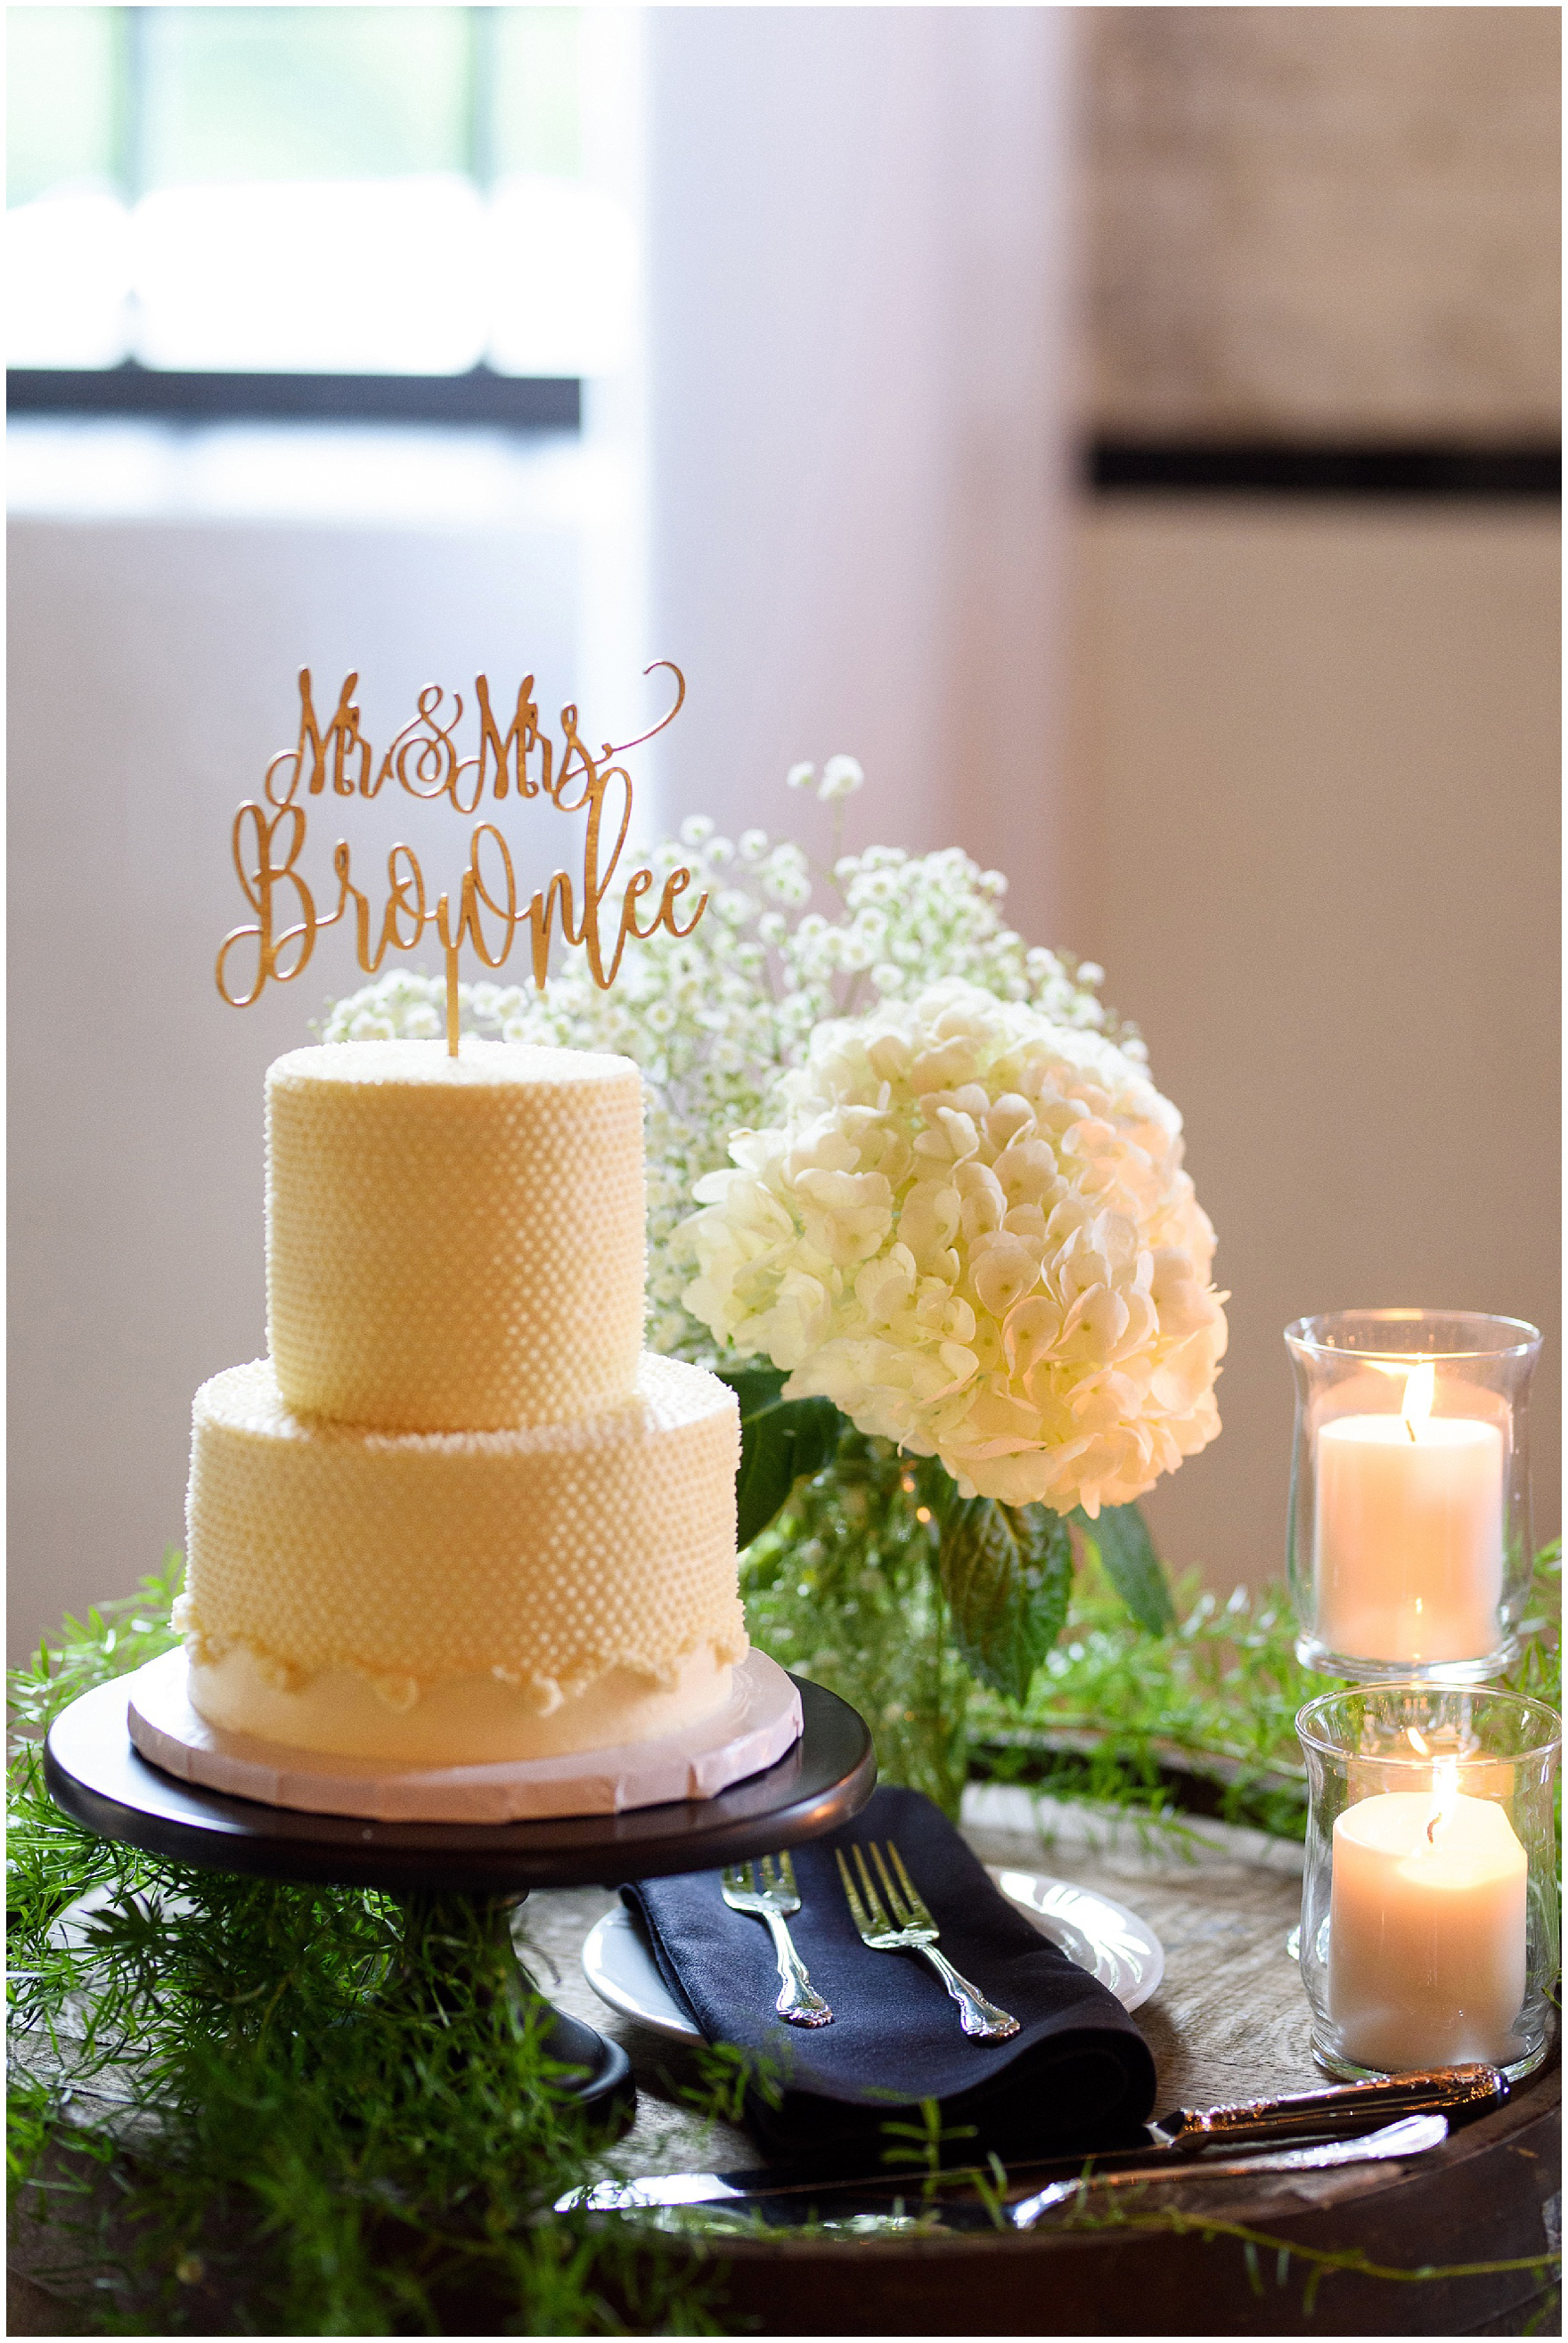 A two-tiered wedding cake by Magnolia Bakery with a personalized cake topper for a wedding reception at The Brick in South Bend, following a University of Notre Dame wedding.